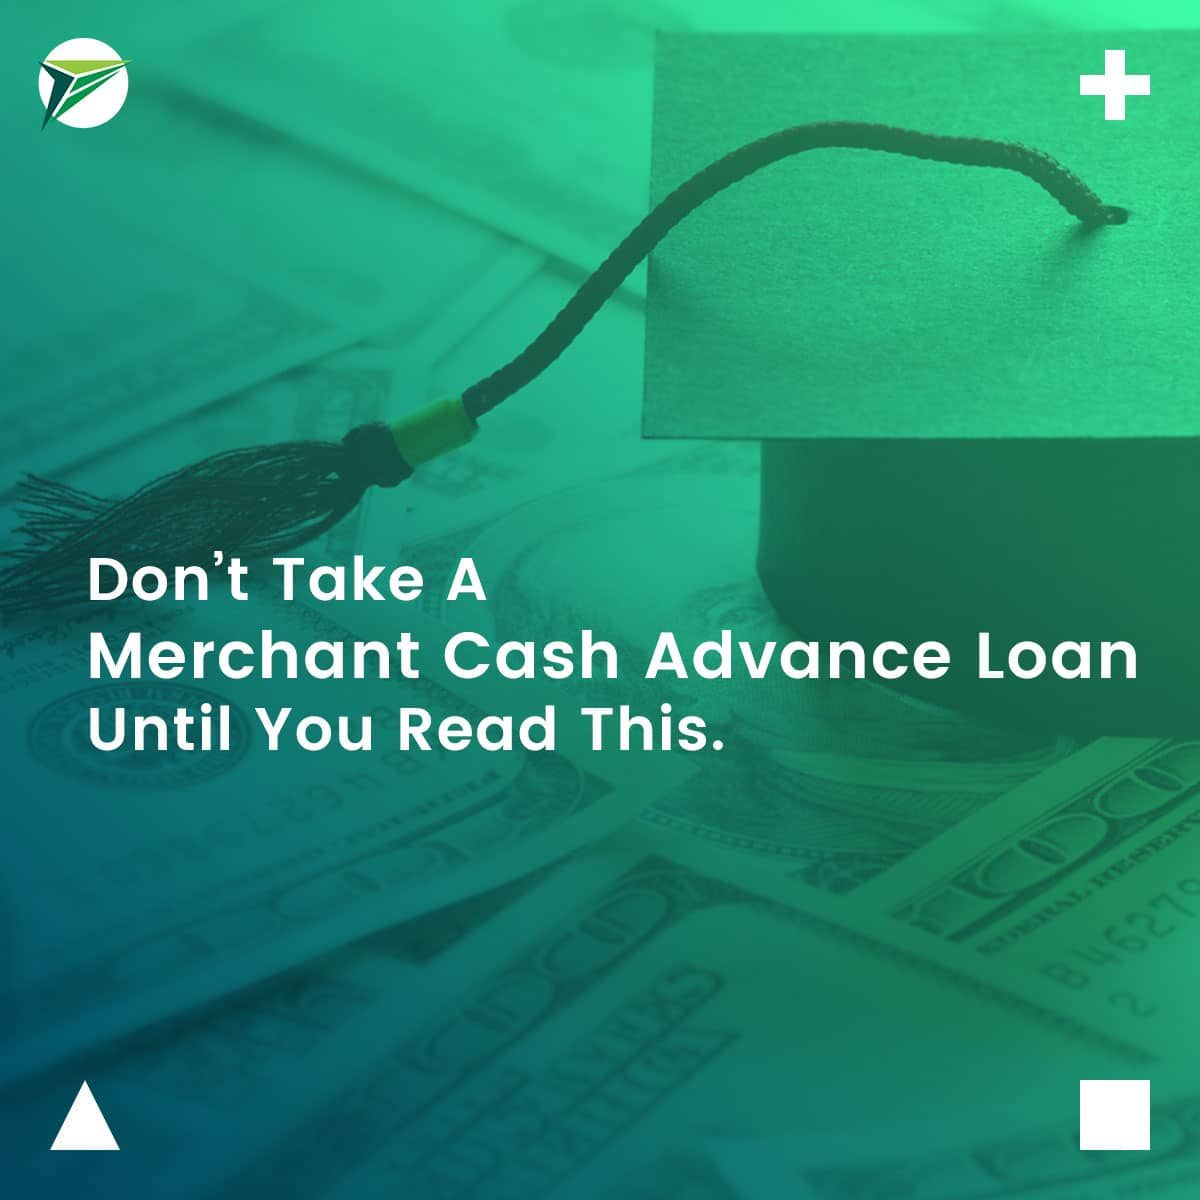 Dont-Take-A-Merchant-Cash-Advance-Loan-Until-You-Read-This